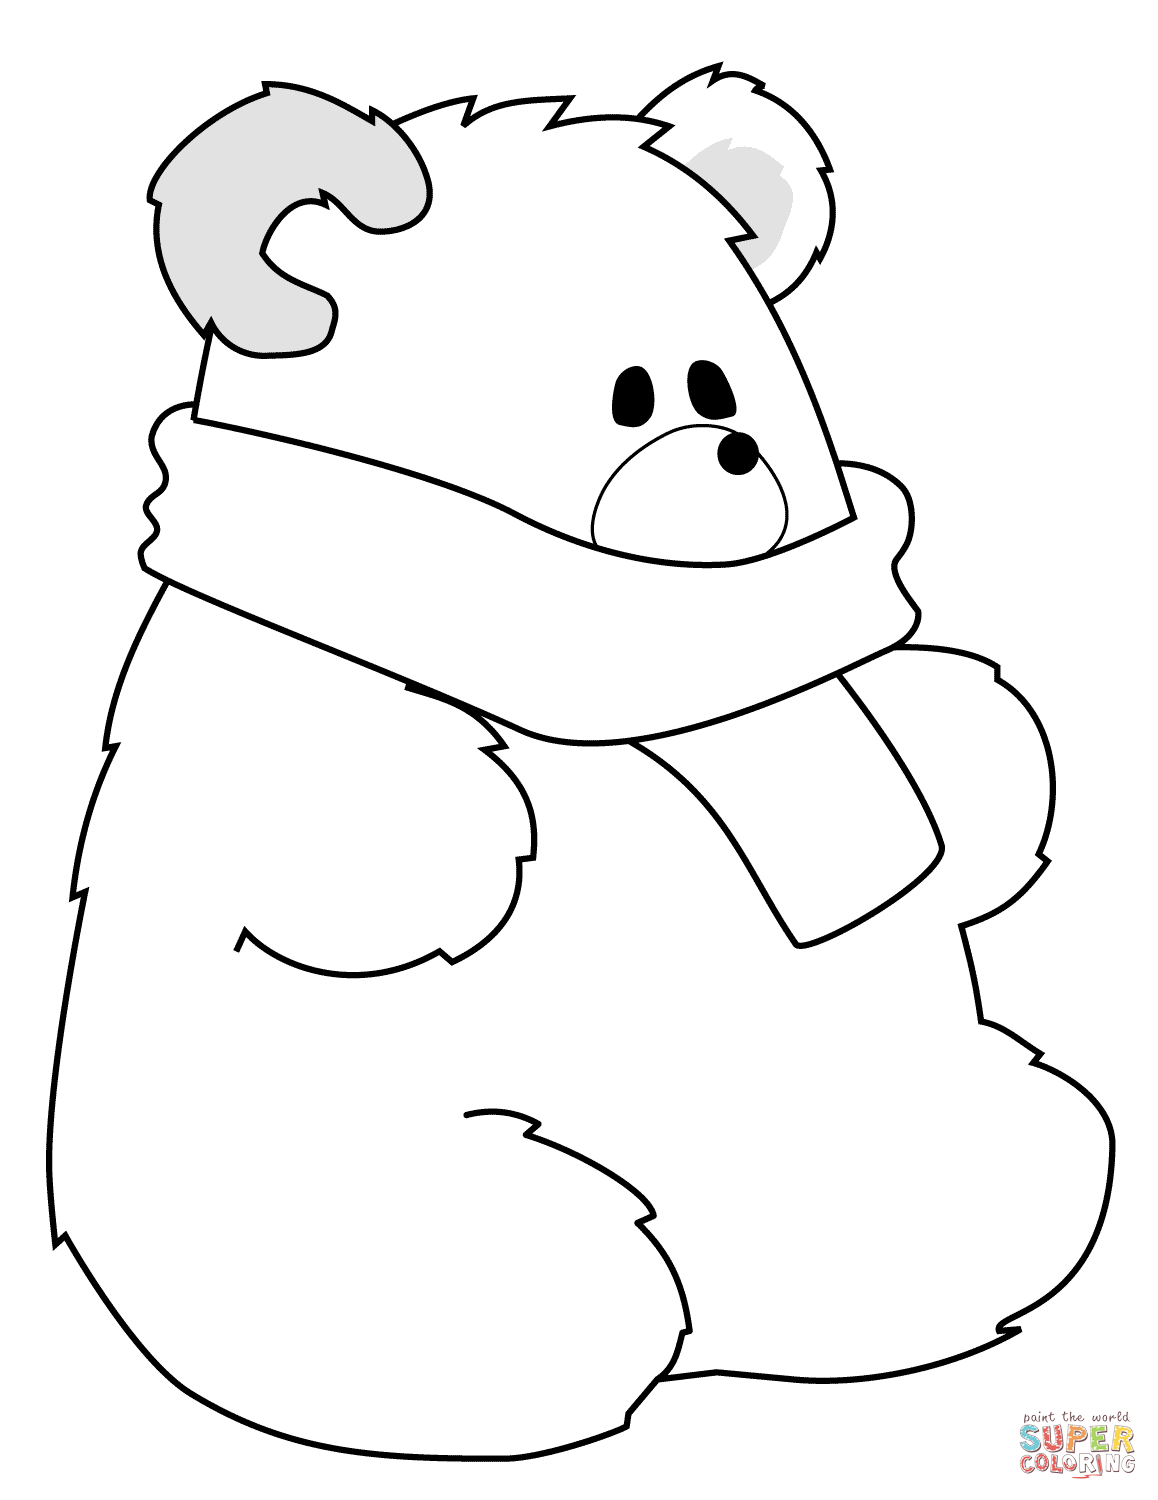 1158x1500 Polar Bear With Scarf Coloring Page Free Printable Coloring Pages